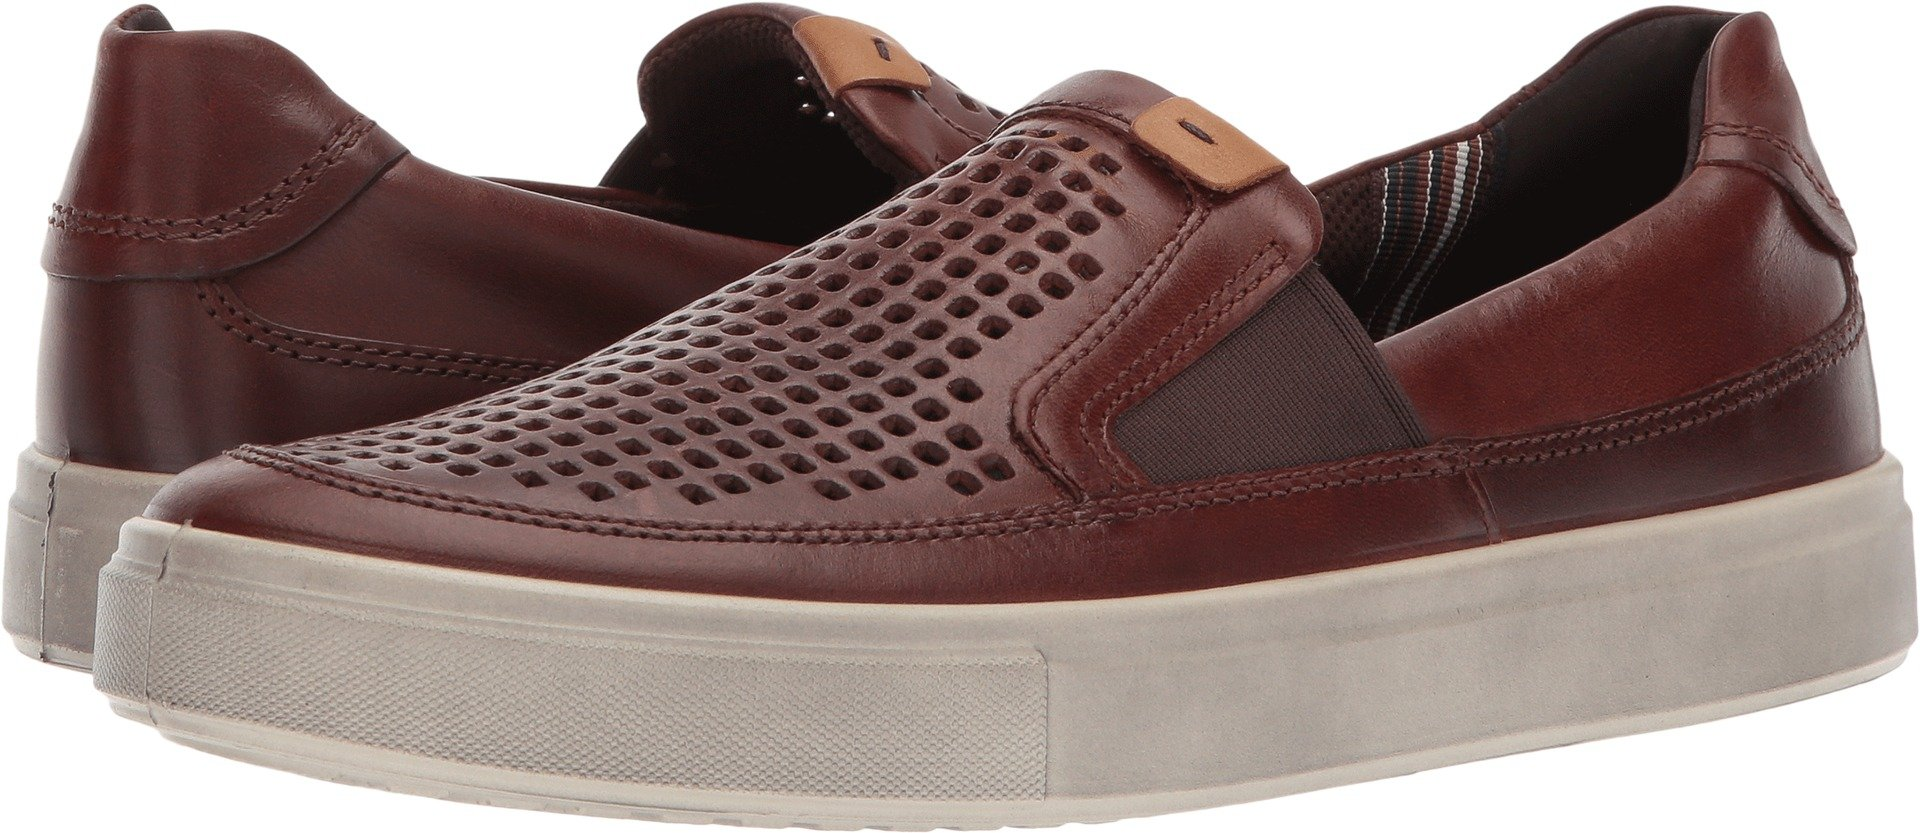 ECCO Men's Kyle Perforated Slip on Fashion Sneaker,cognac,43 EU/9-9.5 M US